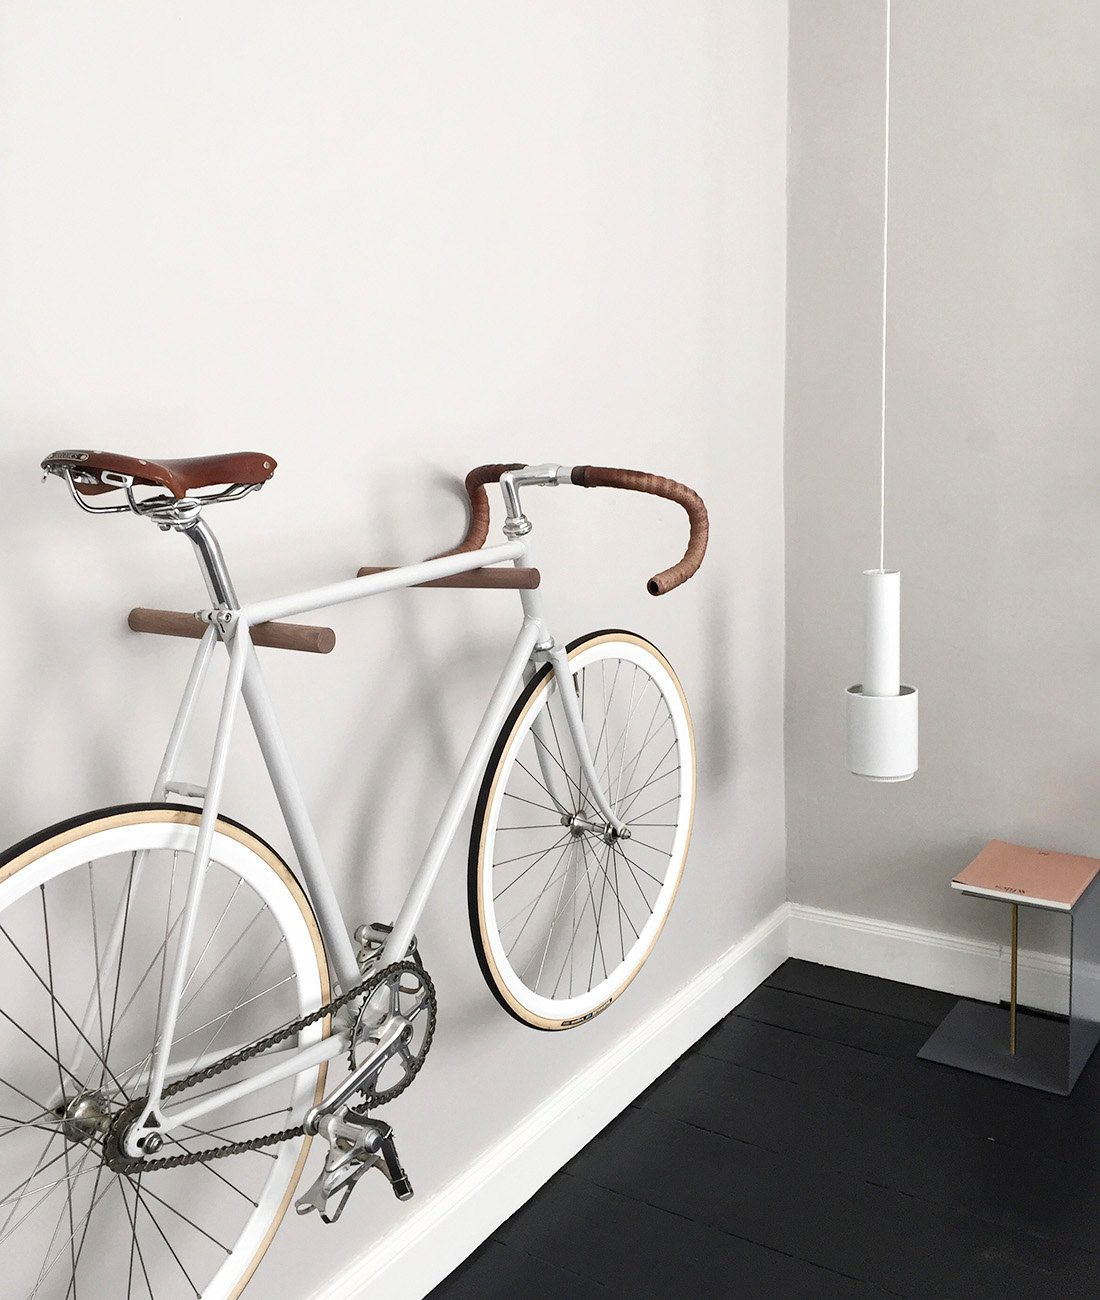 Minimal Father's Day gifts from Etsy | Indoor bike rack